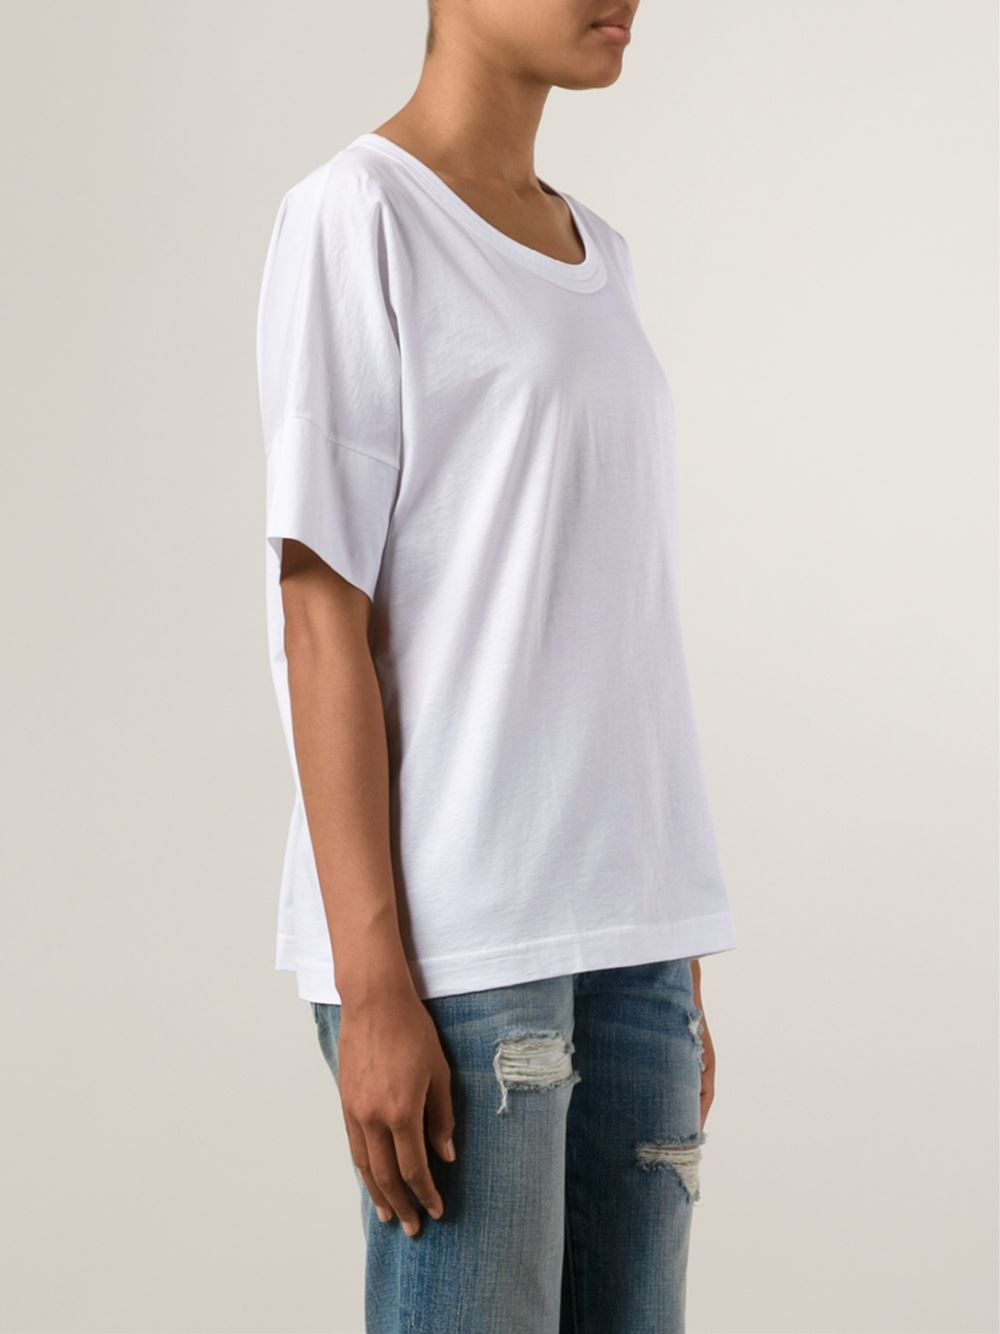 Lemaire Scoop Neck Cotton T Shirt In White Lyst